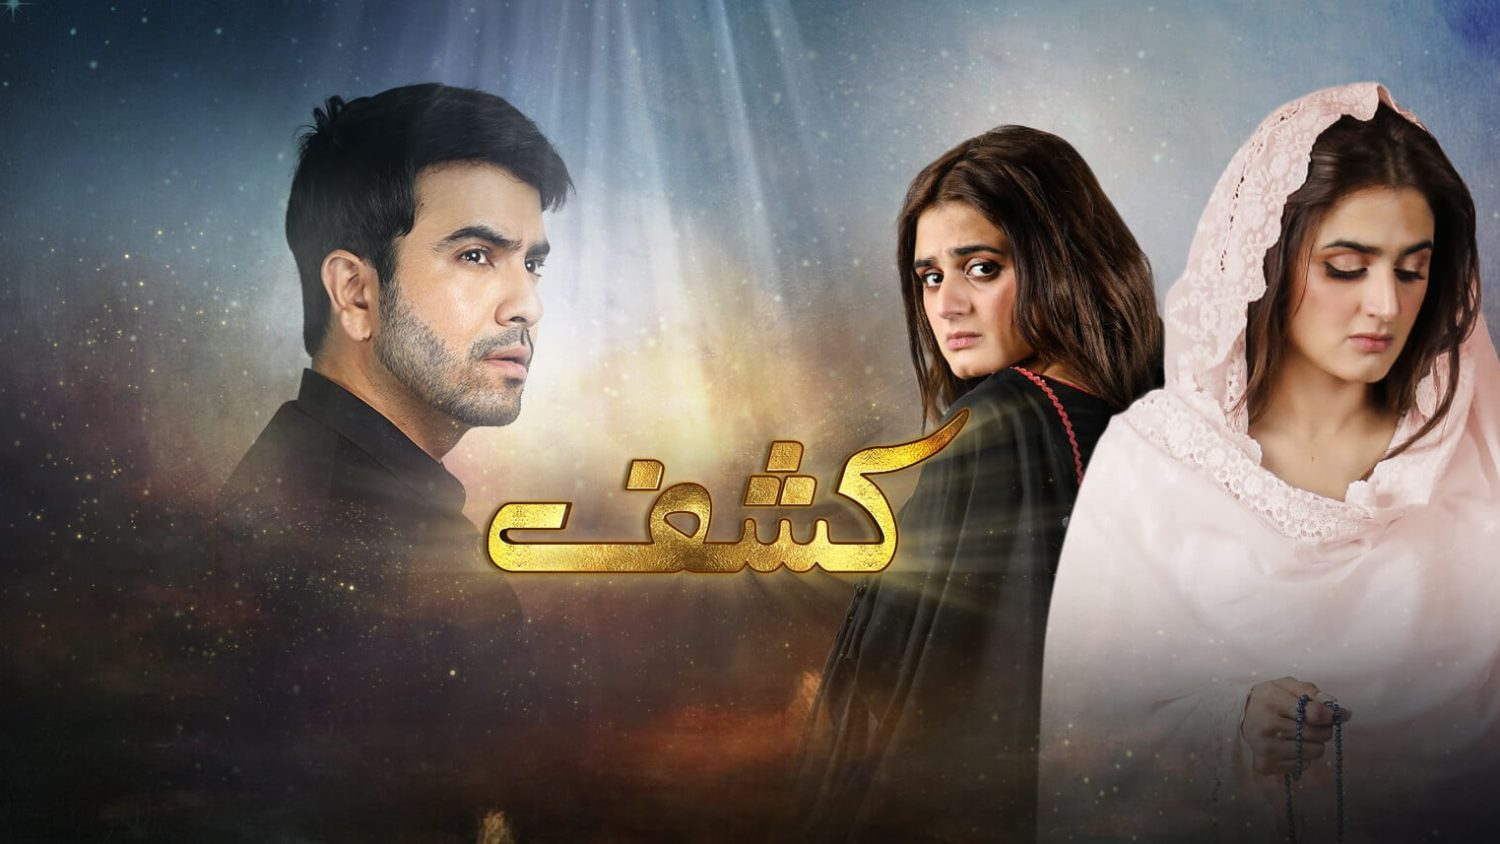 Pakistani drama industry is producing content on regular basis to entertain viewers at the best. These dramas are based on different stories related to social issues as well as domestic troubles. However, some of these dramas fail to portray the true essence of any issue discussed related to society. Most of the dramas these days are good in story-line as well as in terms of direction and acting. Here we have got the list of 10 latest best Pakistani dramas you must watch in 2020. Check out this list! Sabaat Sabaat is based on an amazing idea which is quite different from those of conventional subjects. It's story revolves around different aspects i.e. psychological, financial in terms of status, social pressures, and family life. The lead cast of this drama serial includes Sarah Khan, Mawra Hocane, Ameer Gillani, and Usman Mukhtar. Sarah Khan as Miraal and Ameer Gillani as Hassan belong to a super rich family. Miral is quite possessive regarding wealth and status while Hassan learns by the time not to rely on materialistic approach. Mawra as Anaya belongs to a middle class family and she is a gold medalist but social pressures make her face hurdles in married life. Hassan falls for Anaya and takes stand to marry her despite status differences but it turned out troublesome to Miraal. Usman Mukhtar is Miraal's doctor who then gets married to her as well. The story is going on and with lows and highs, twists and turns, where every episode is revealing new ends. You can watch it every Sunday at 08:00 PM only on Hum TV. Kashf Kashf revolves around the main, title character 'Kashf' played by Hira Mani and her struggles in life. However, her life issues are beyond the husband, saas and nand matters. It is a harsh reality of our country that is not mostly explained and remains a taboo topic to a certain extent. With Hira Mani and Junaid Khan in the lead, Kashf is an eye-opener for many. As per the story, Kashf is a gifted girl who has acquired the ability to foresee future 